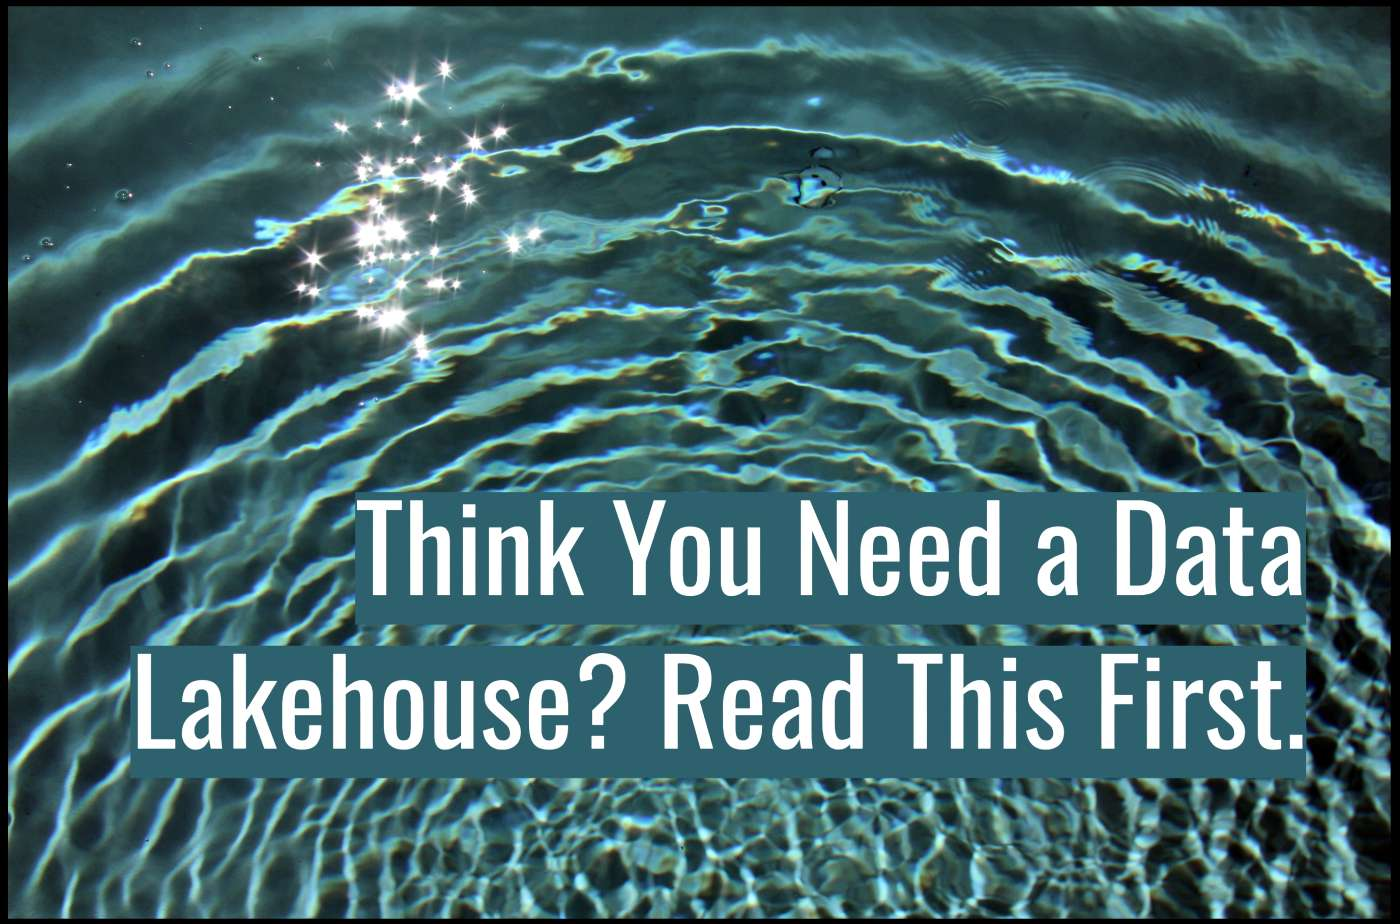 Think you need a data lakehouse?